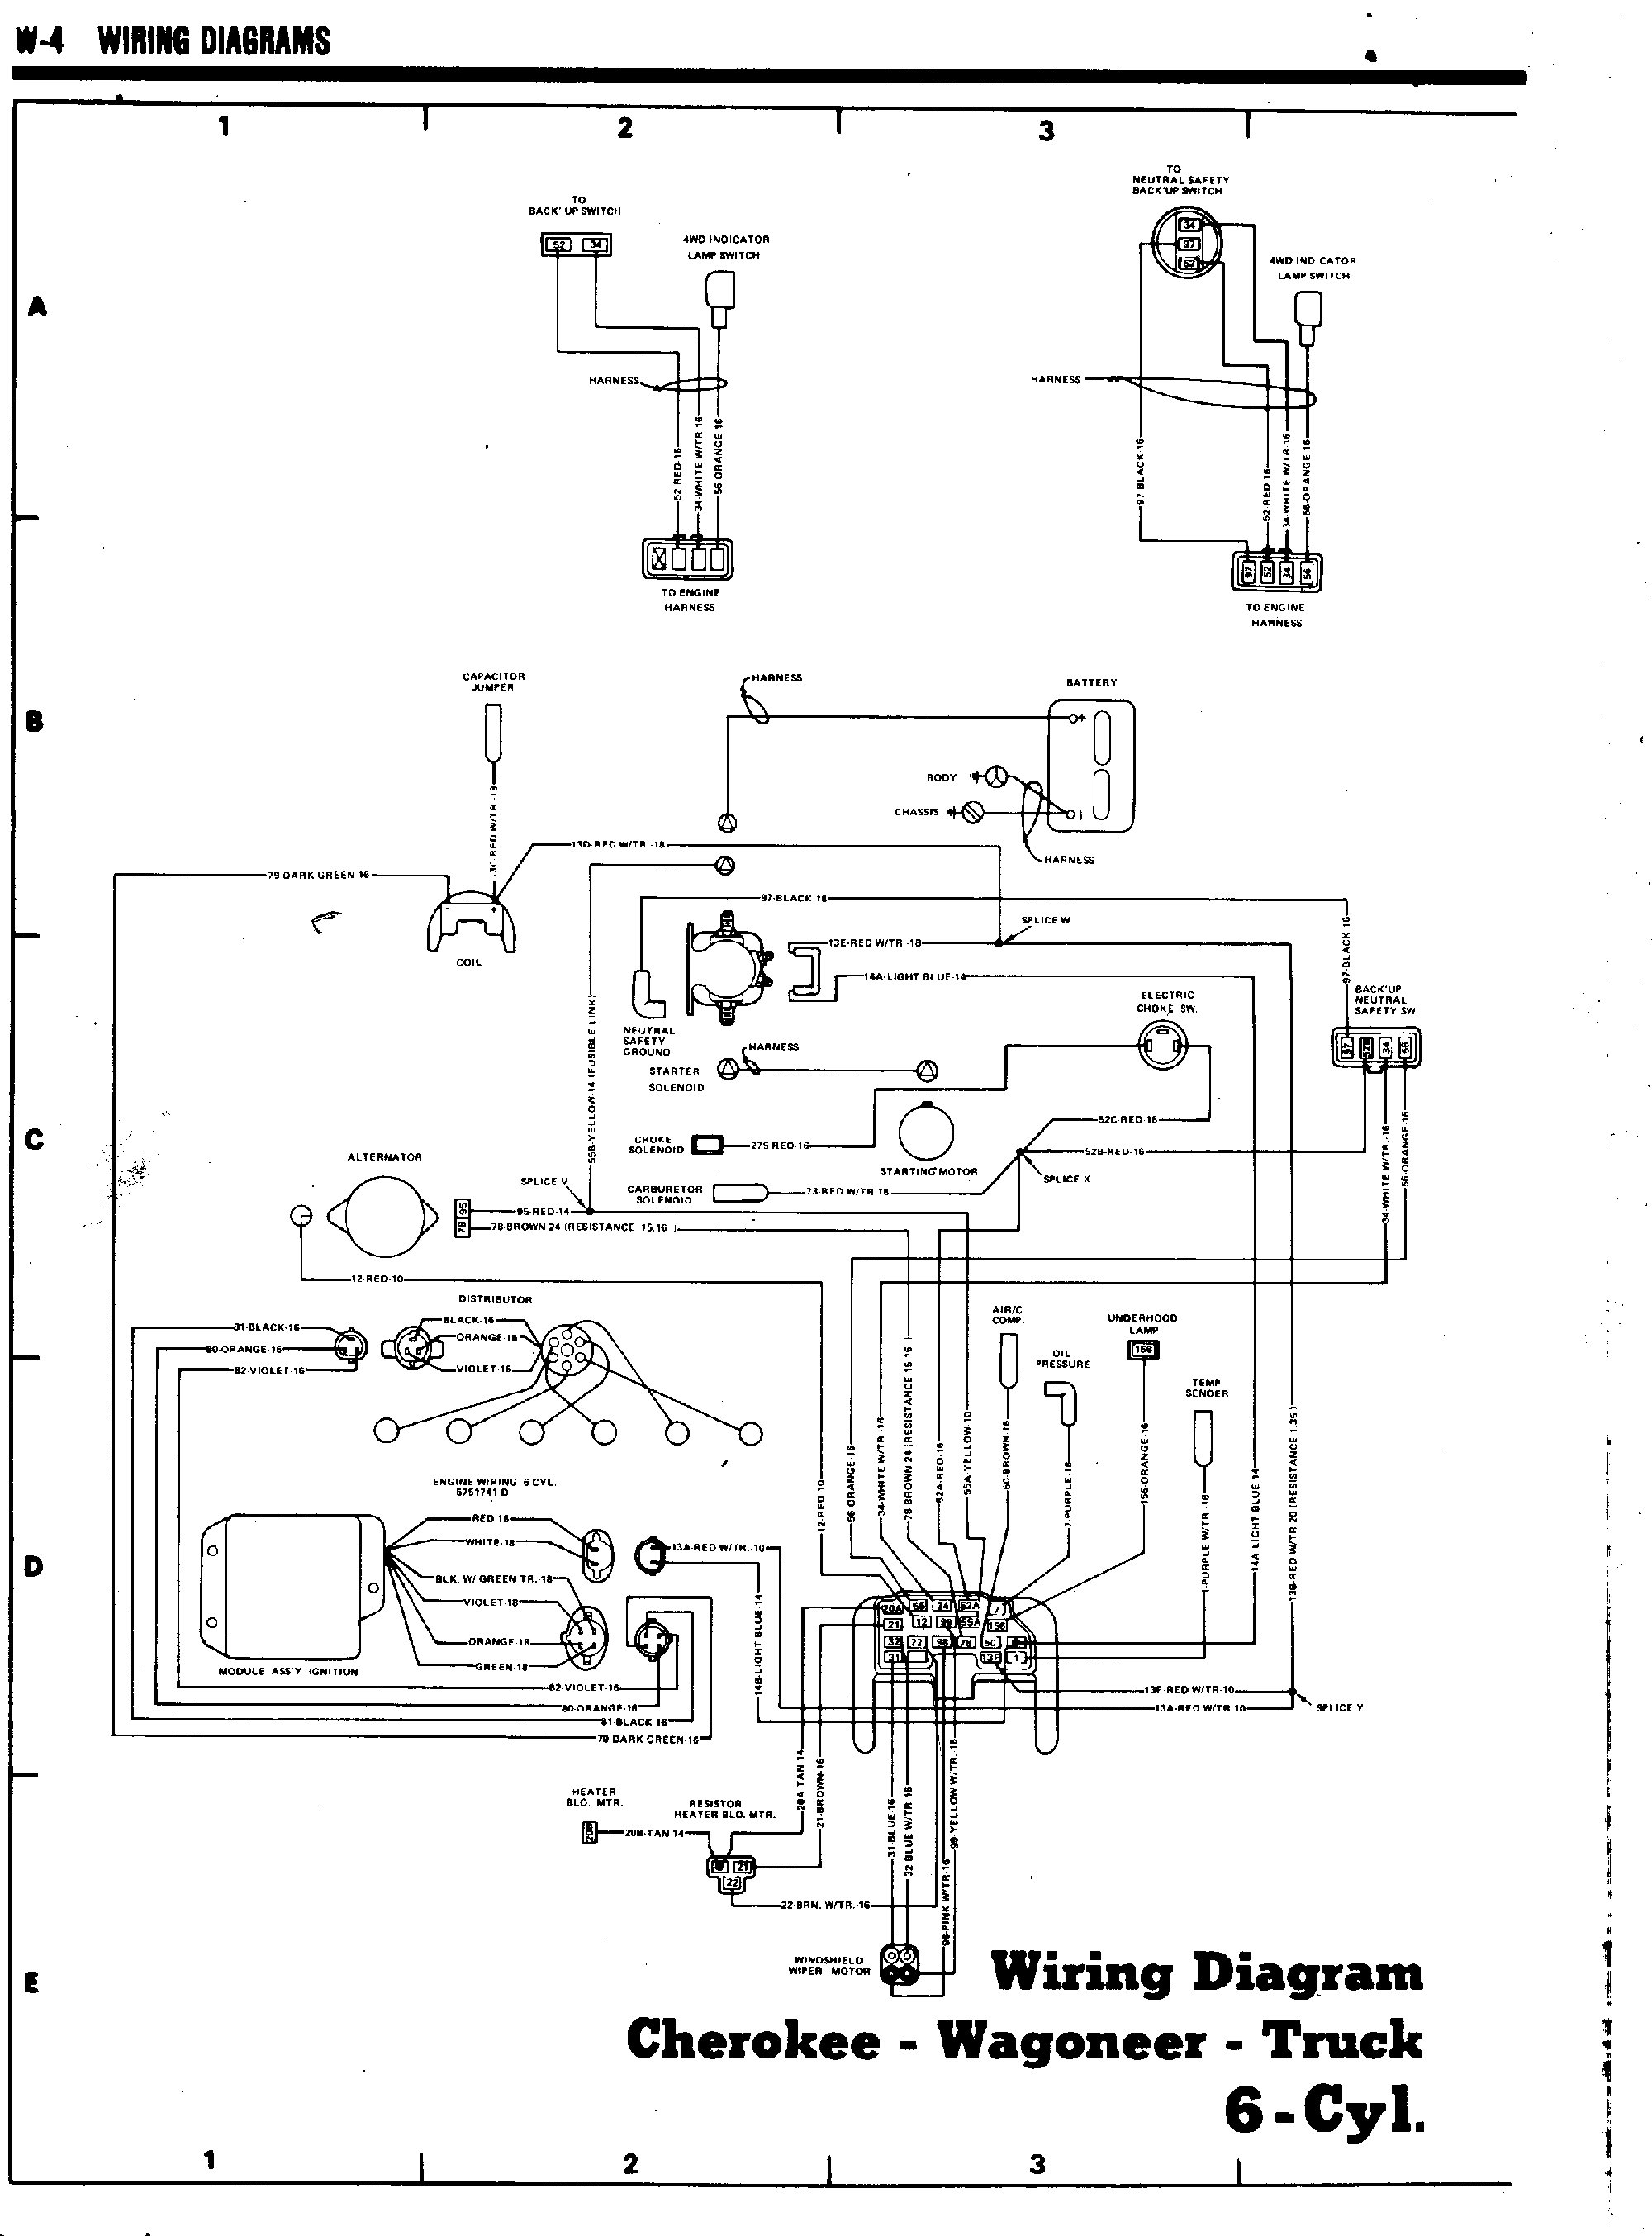 78 Cj7 Wiring Diagram